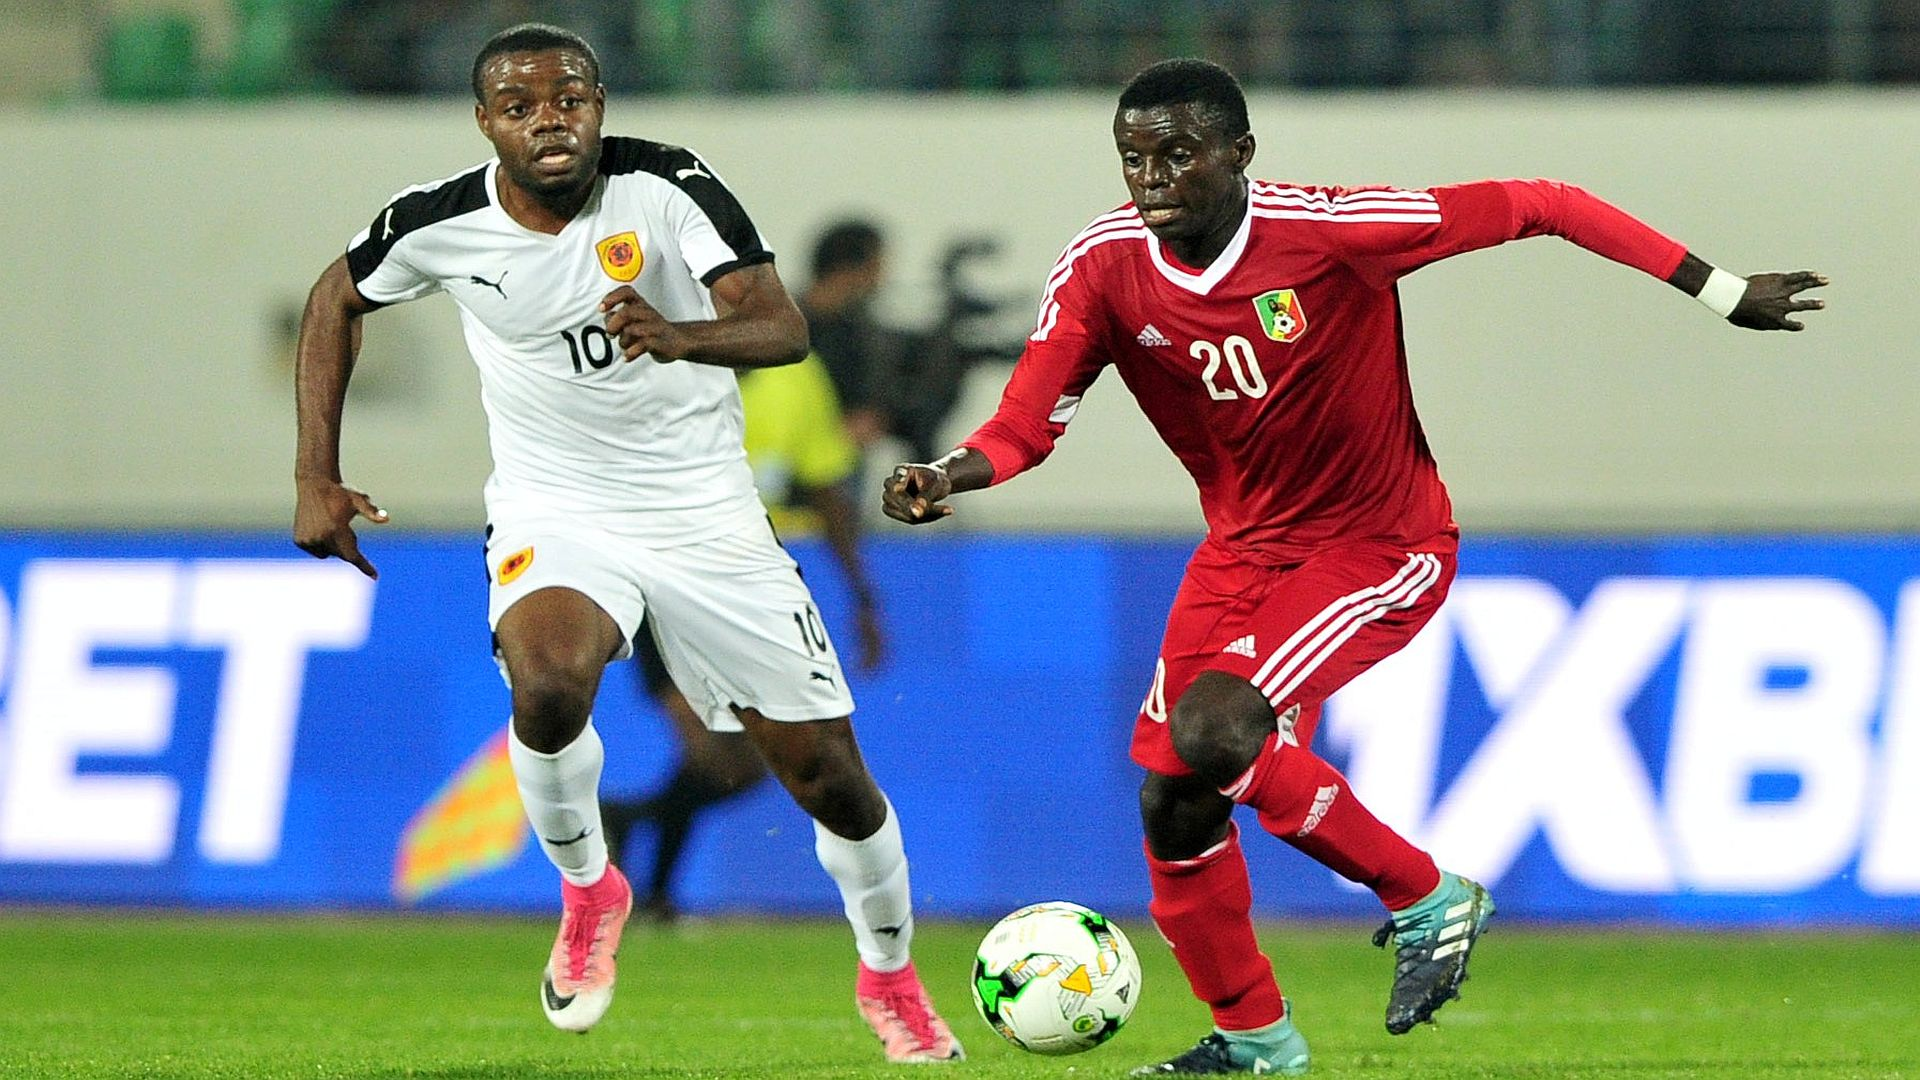 CHAN 2018: Angola earns draw against Congo as both advance to quarters